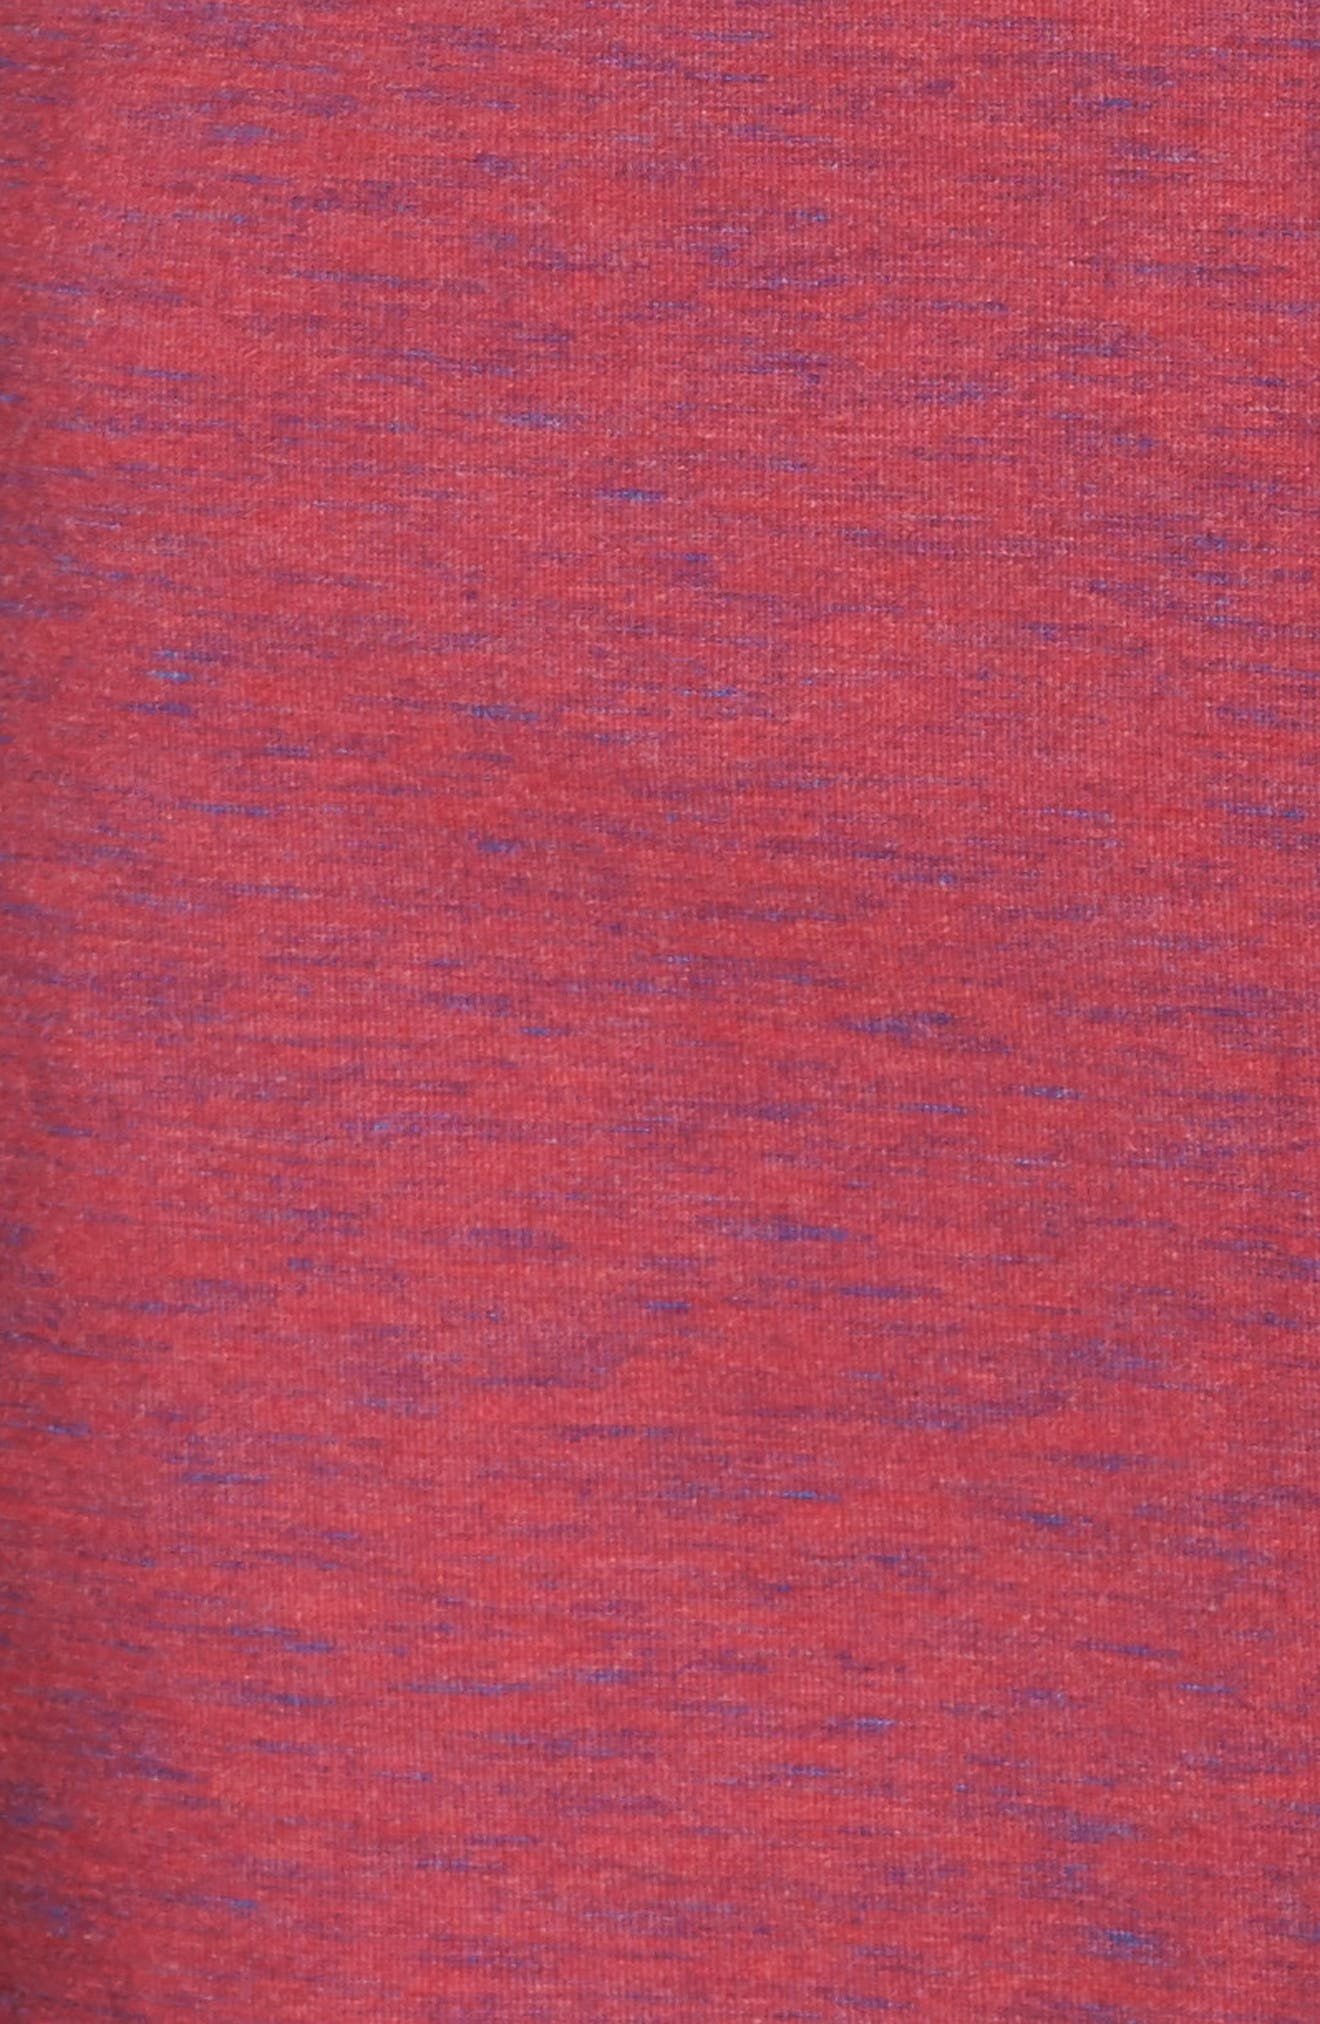 NORDSTROM LINGERIE,                             Moonlight Pajamas,                             Alternate thumbnail 5, color,                             BURGUNDY SPACEDYE